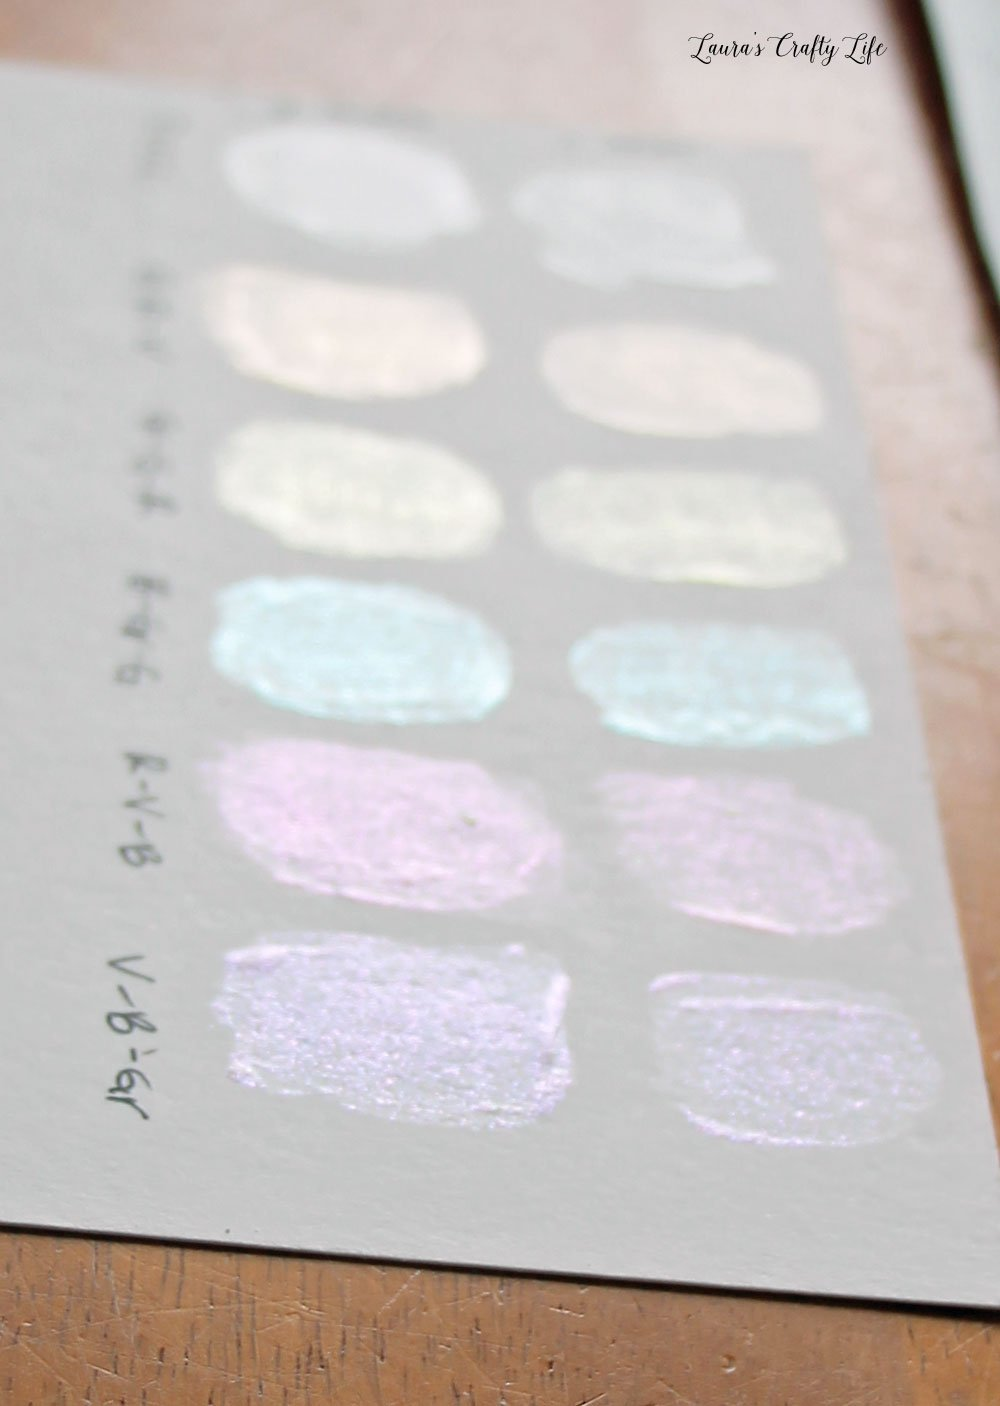 Different finishes of Dragonfly Glaze